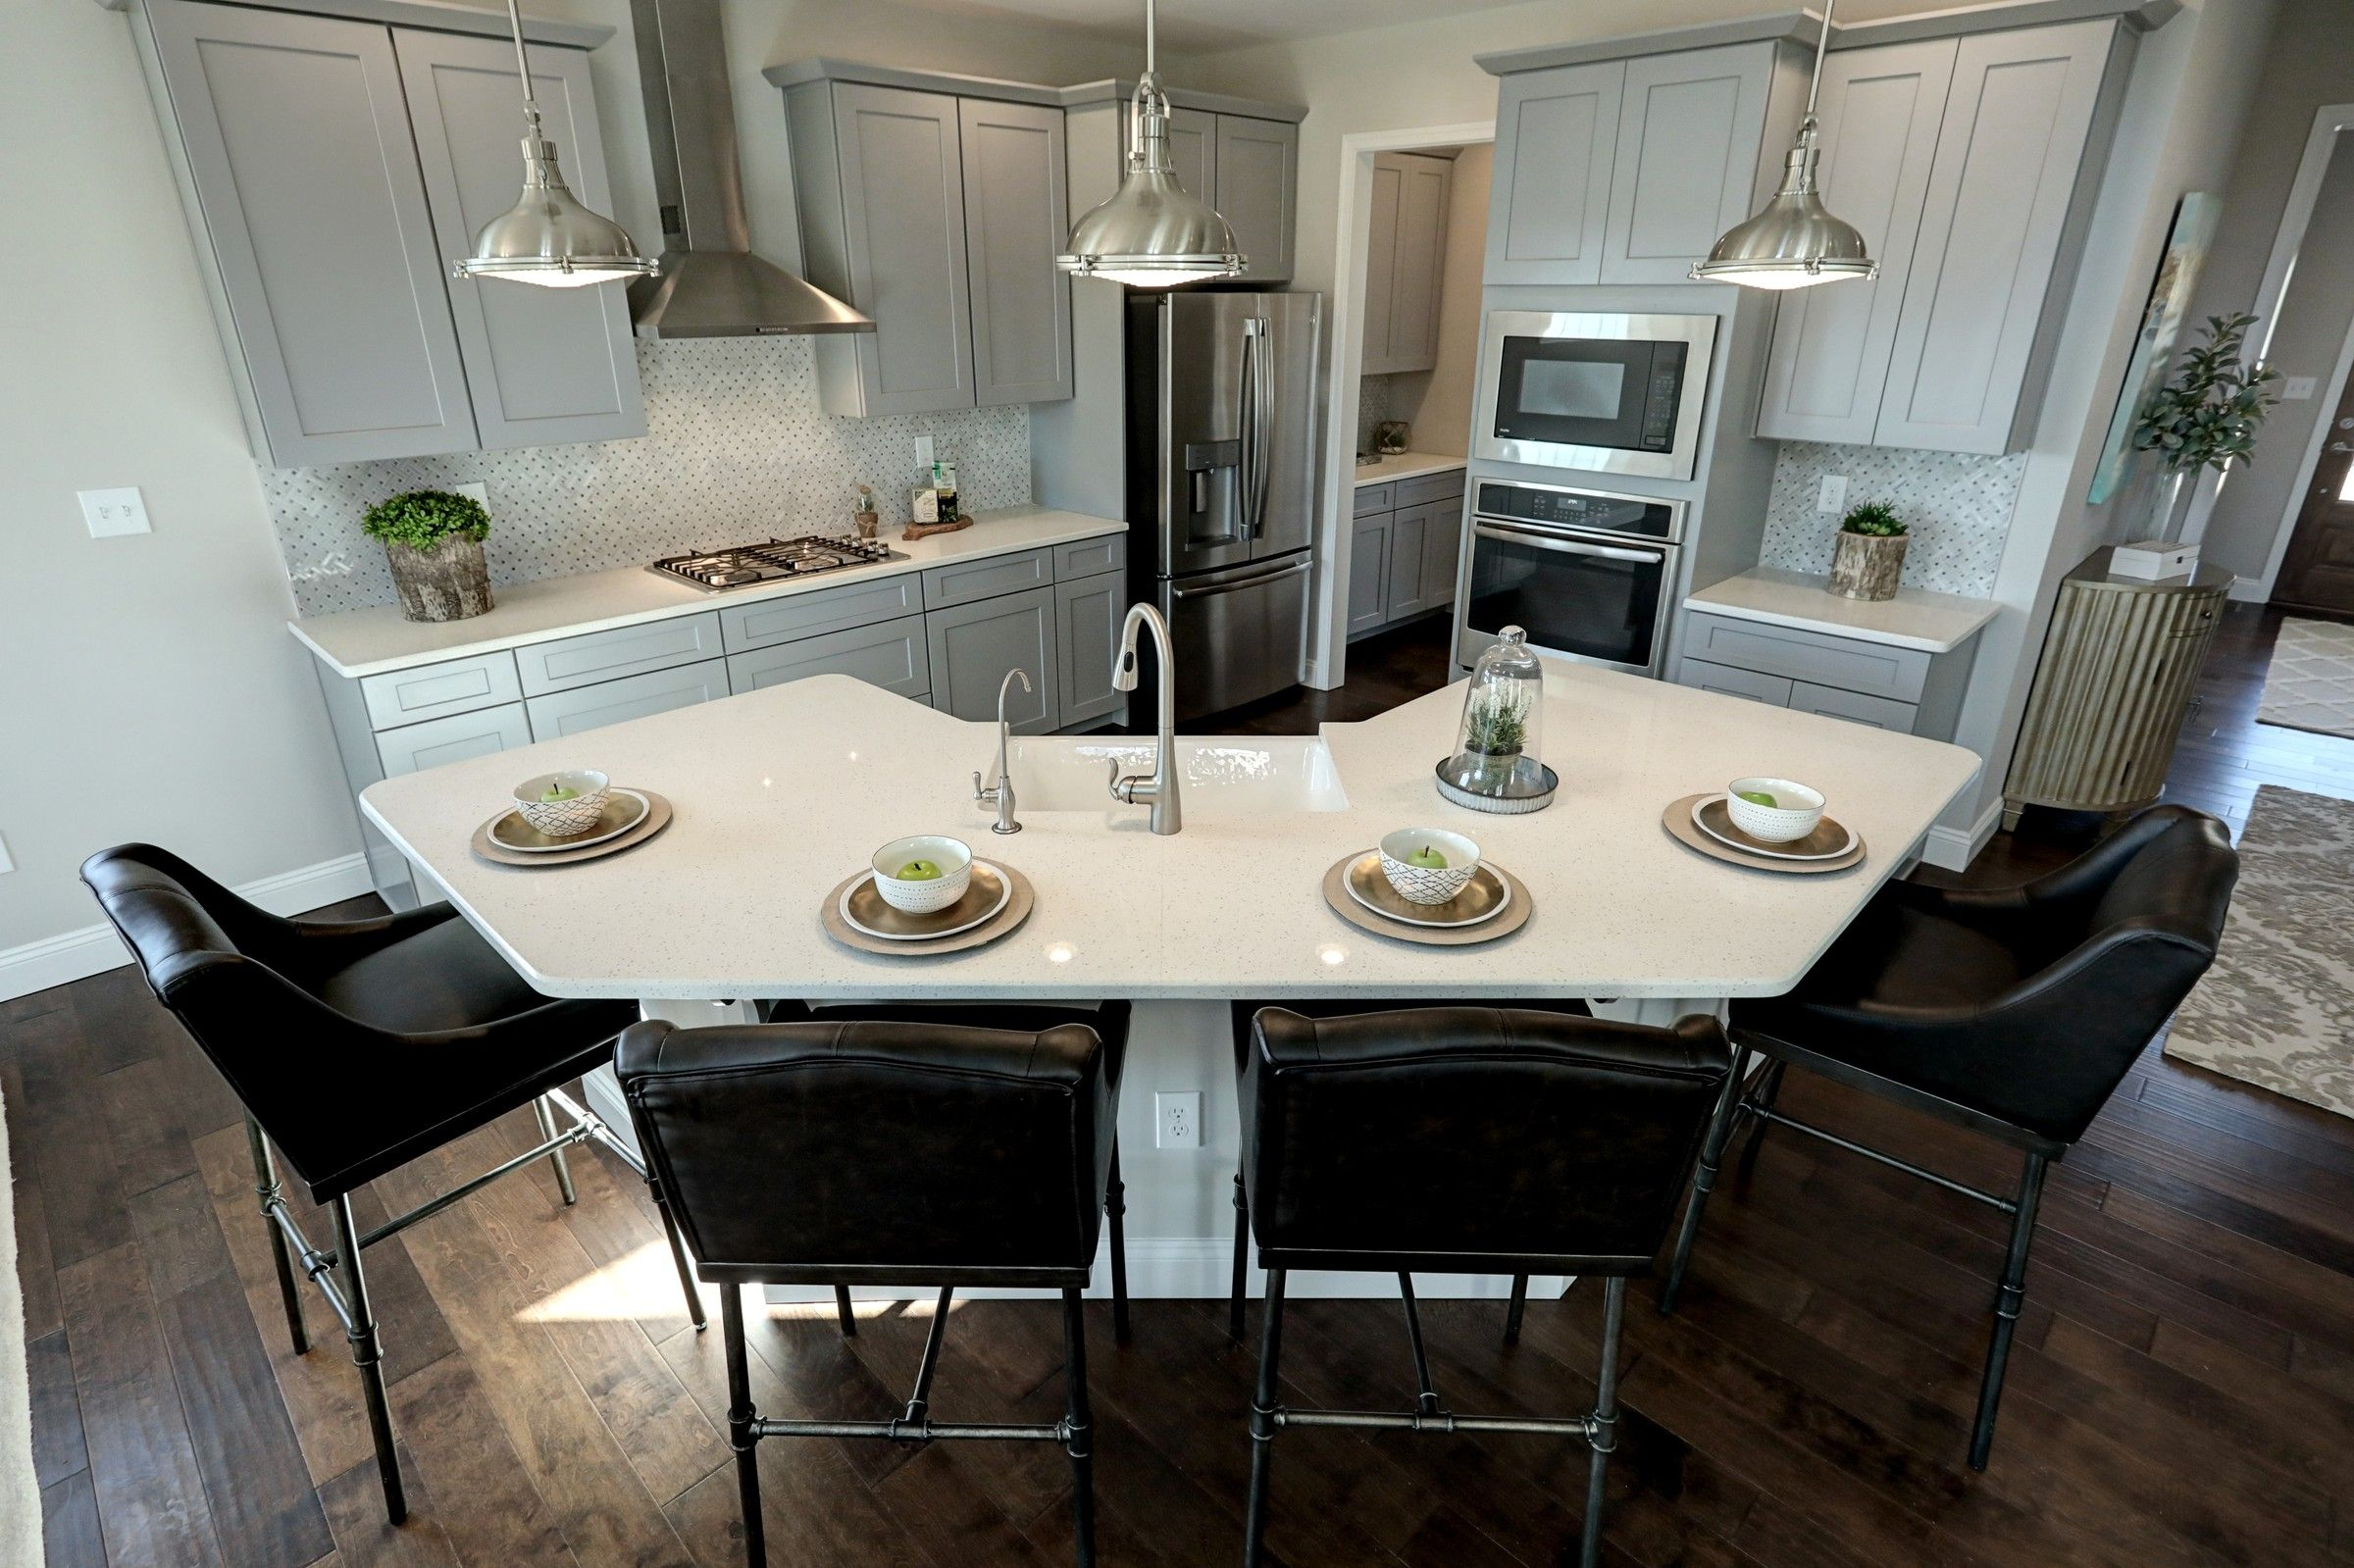 Kitchen featured in the Nottingham Normandy By Keystone Custom Homes in York, PA